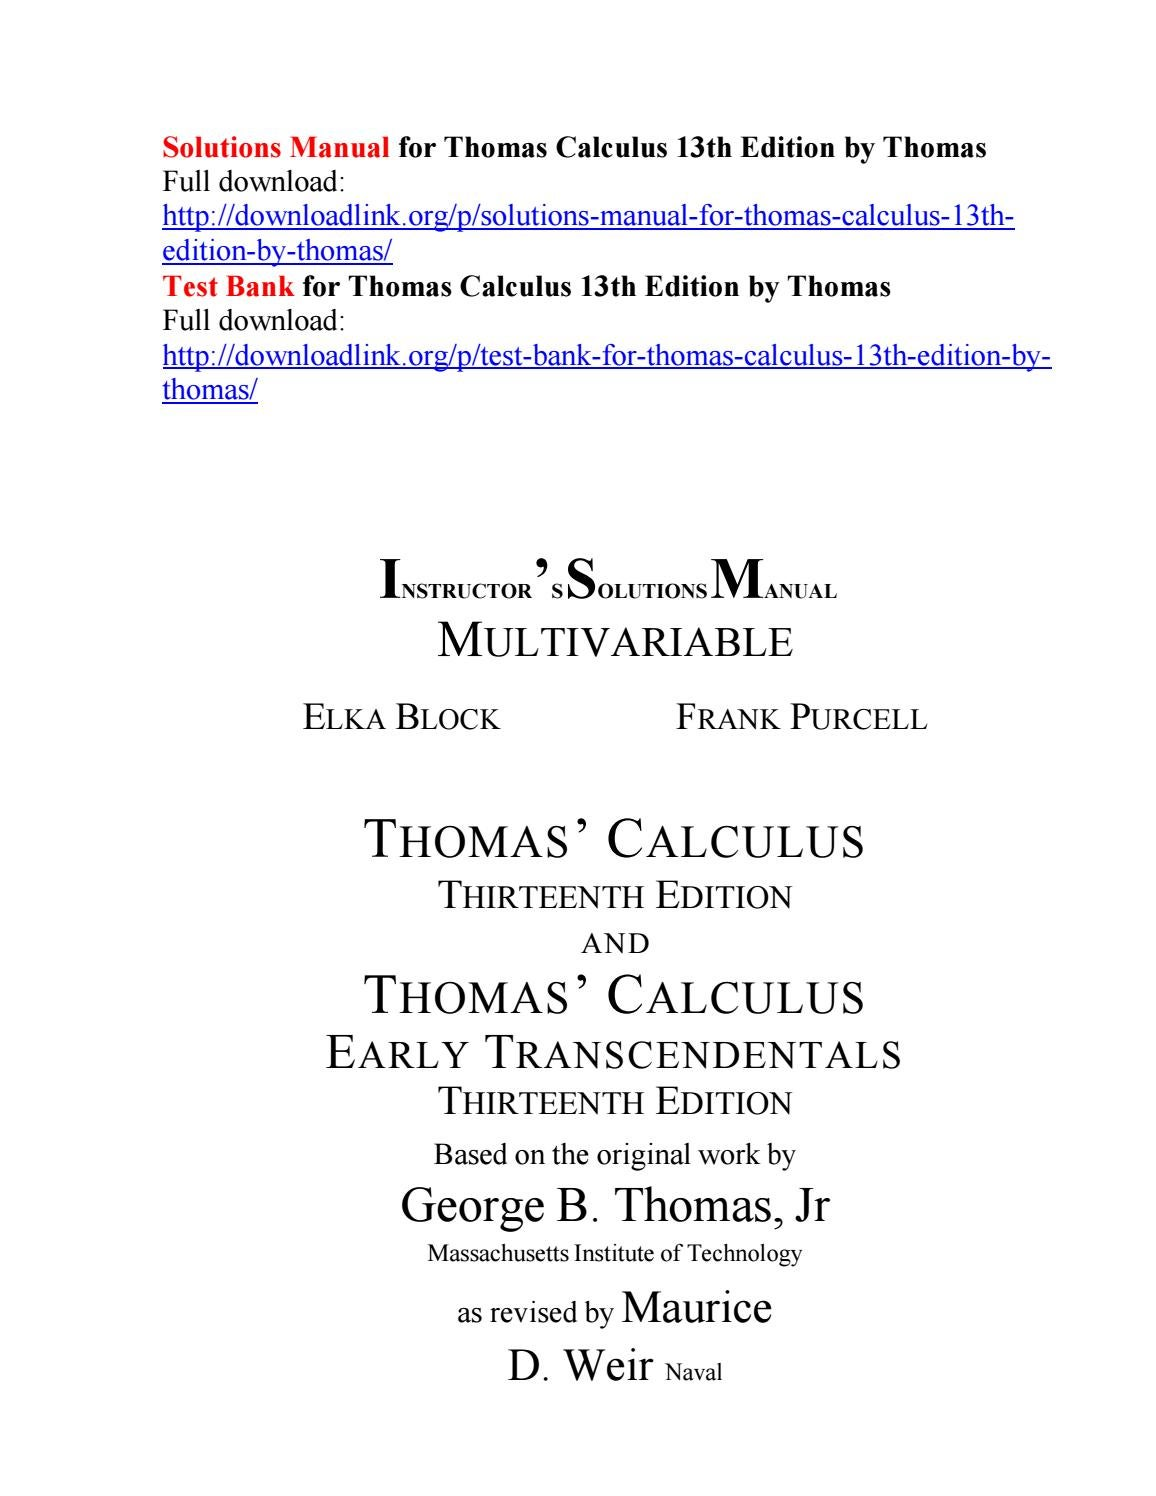 Solutions manual for thomas calculus 13th edition by thomas by Cardon41 -  issuu